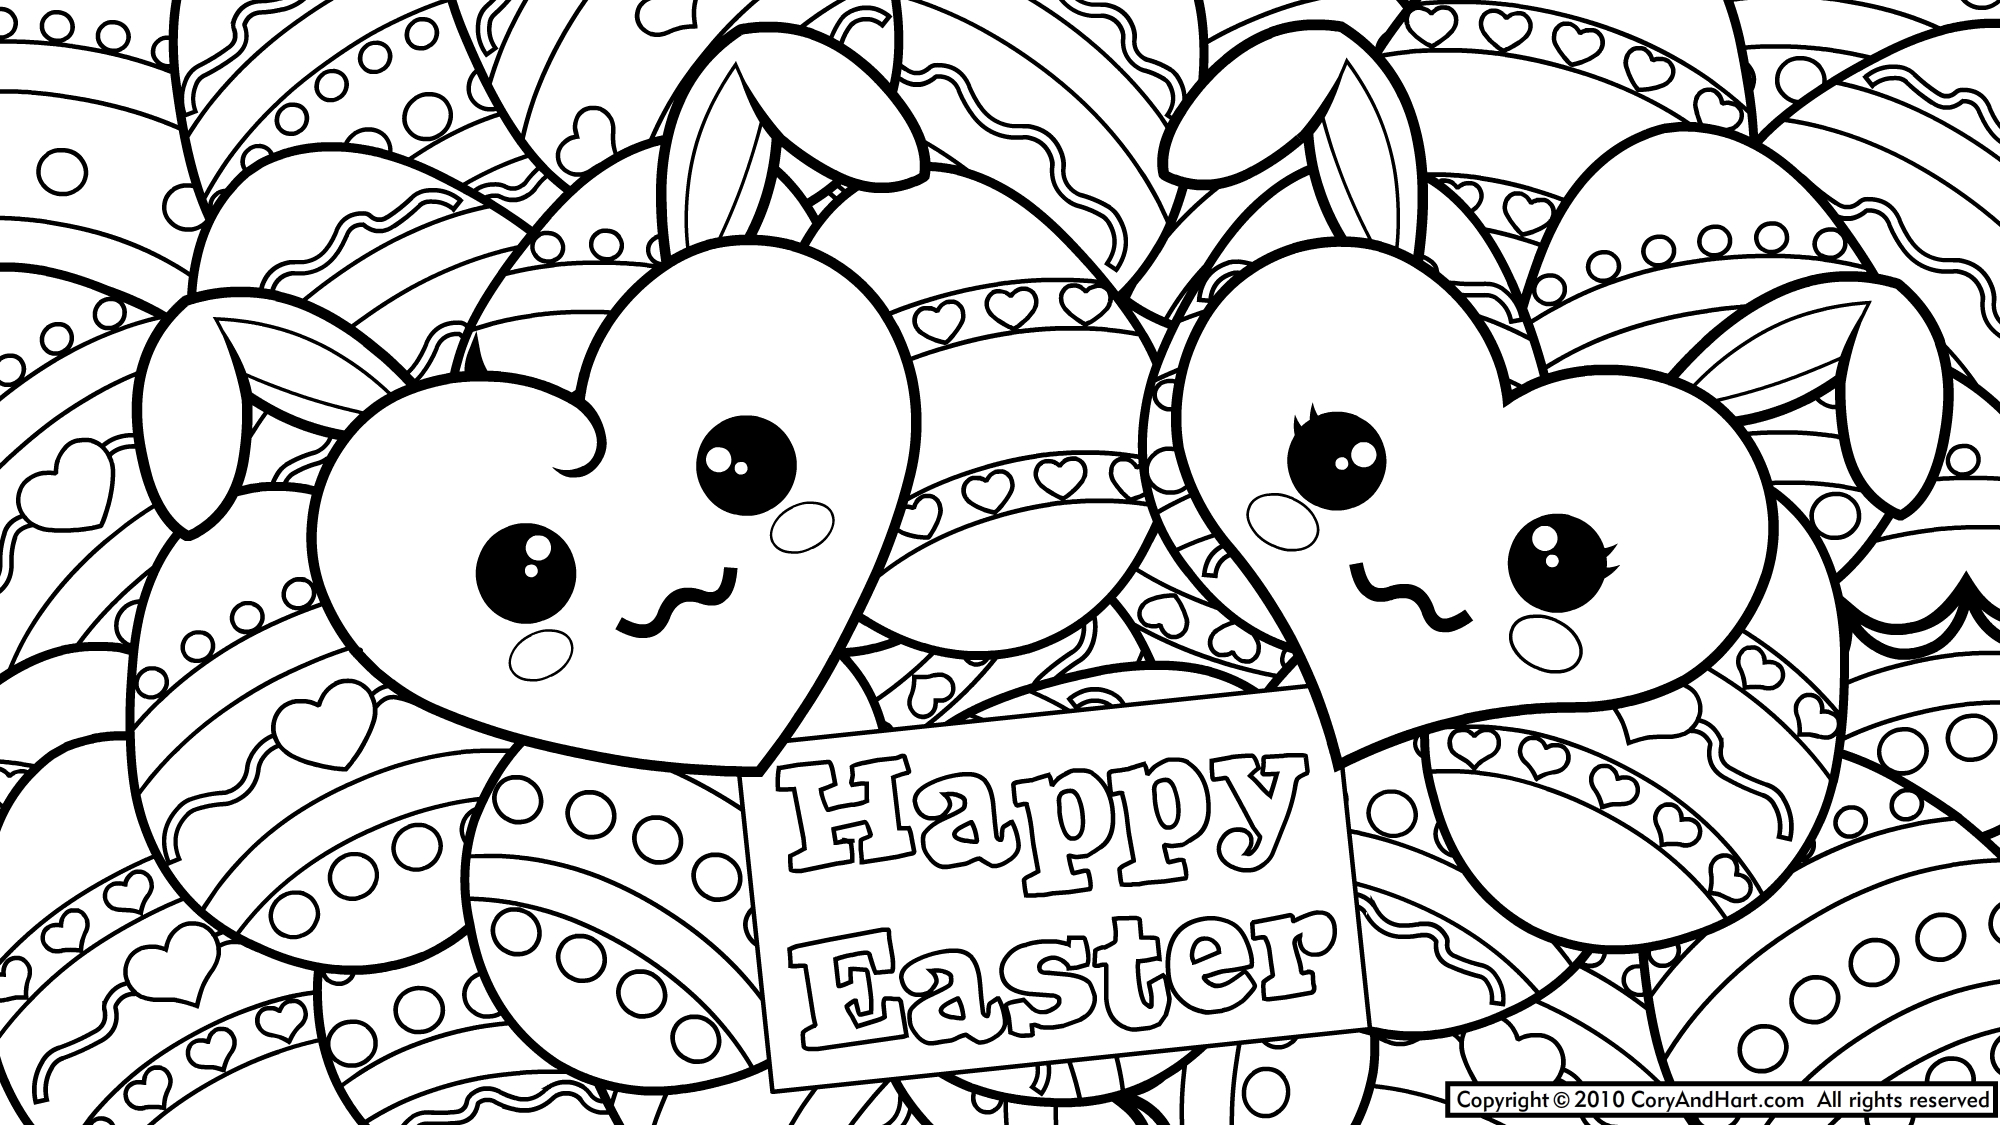 Coloring Pages : Easter Coloring Sheets For Kids Marvelous Printable - Easter Color Pages Free Printable